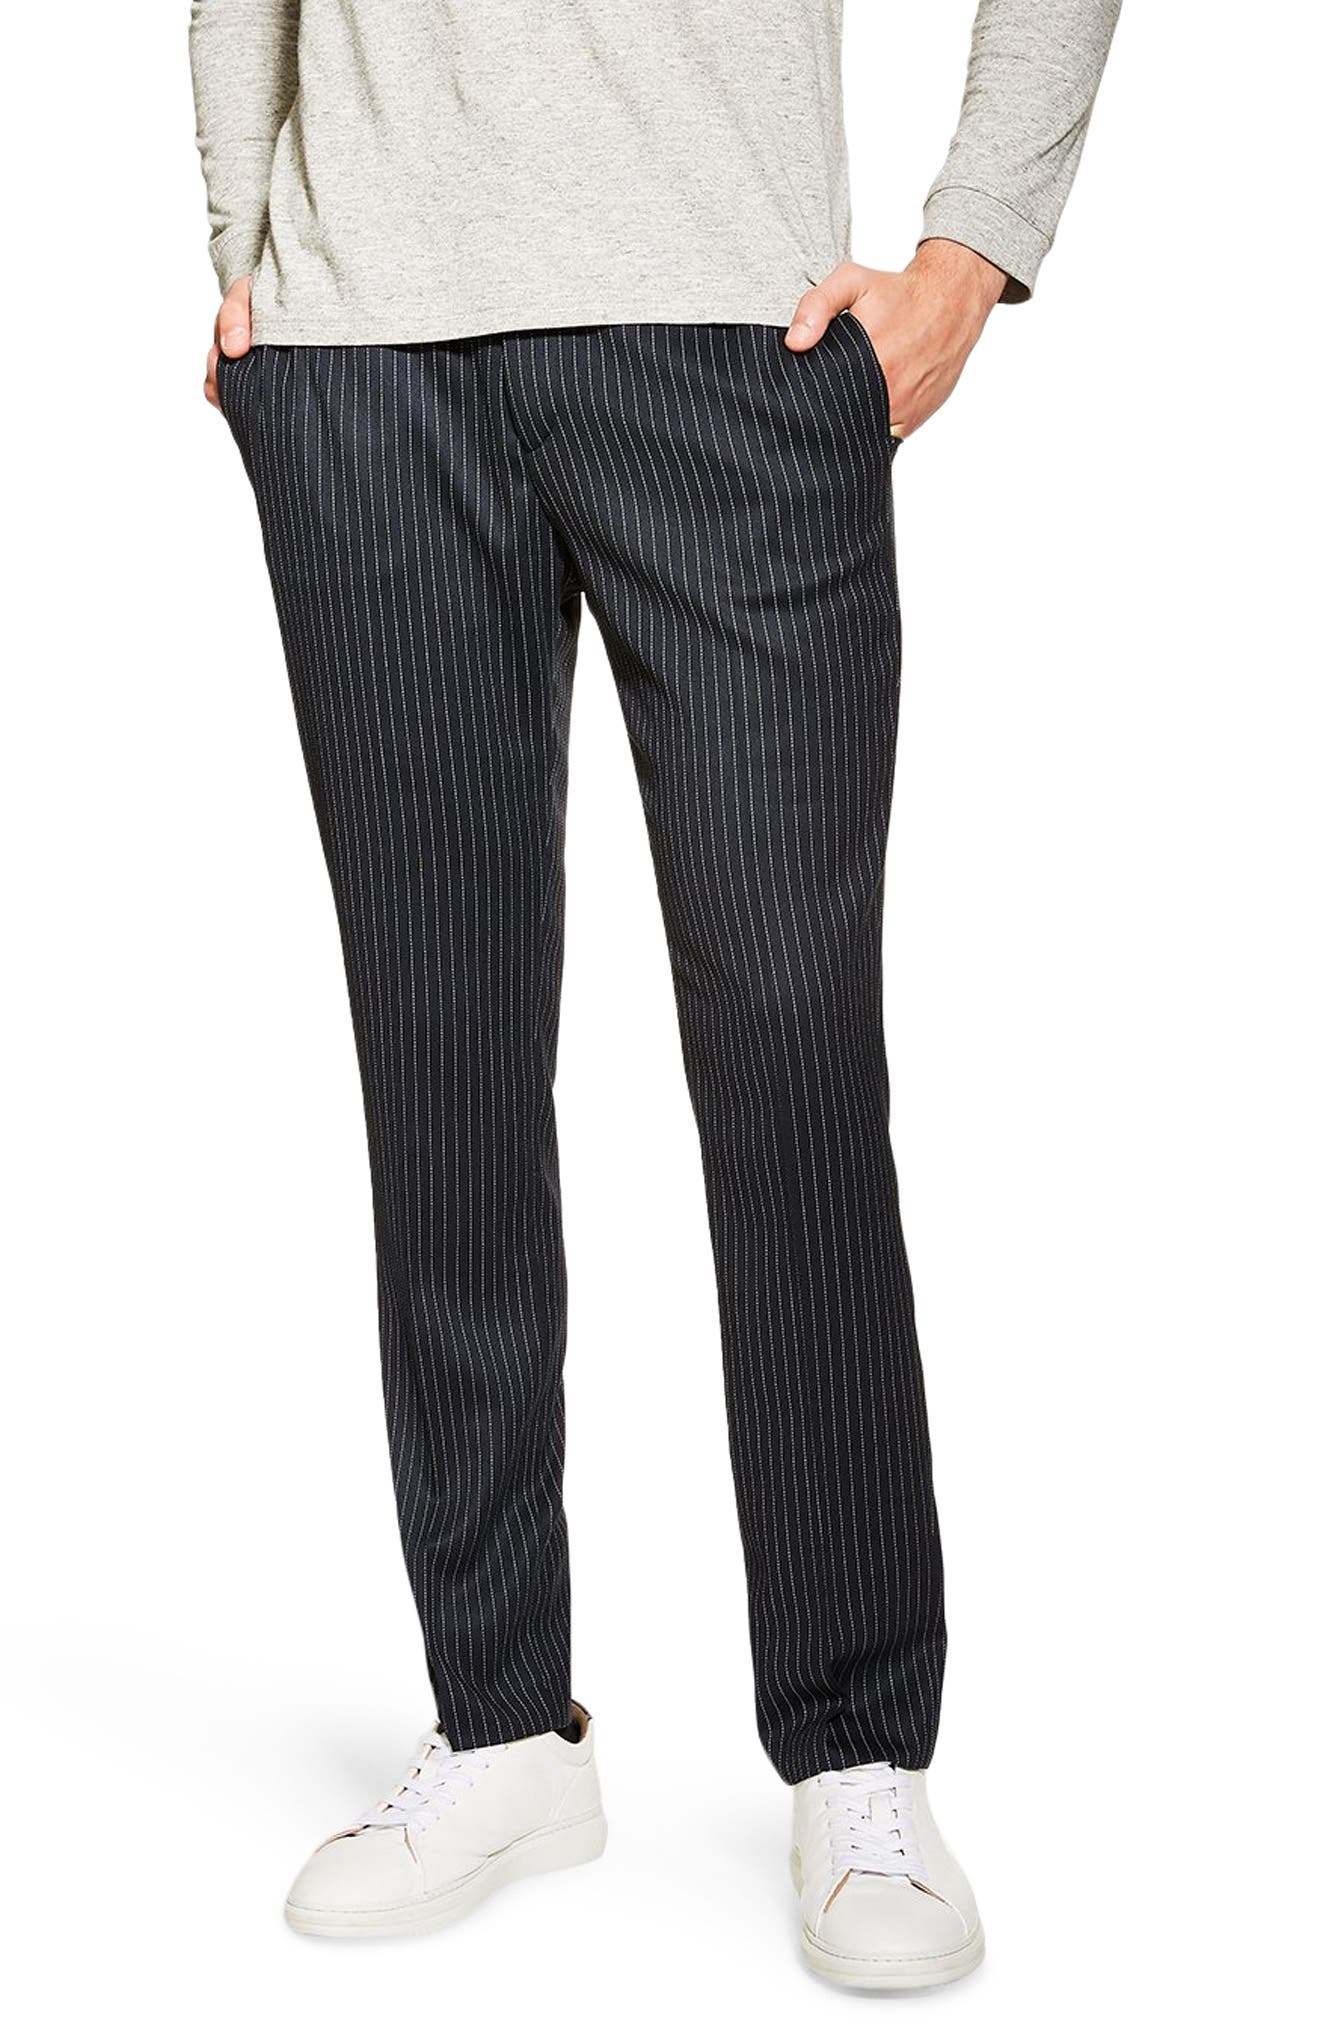 TOPMAN, Tailored Pinstripe Trousers, Main thumbnail 1, color, NAVY BLUE